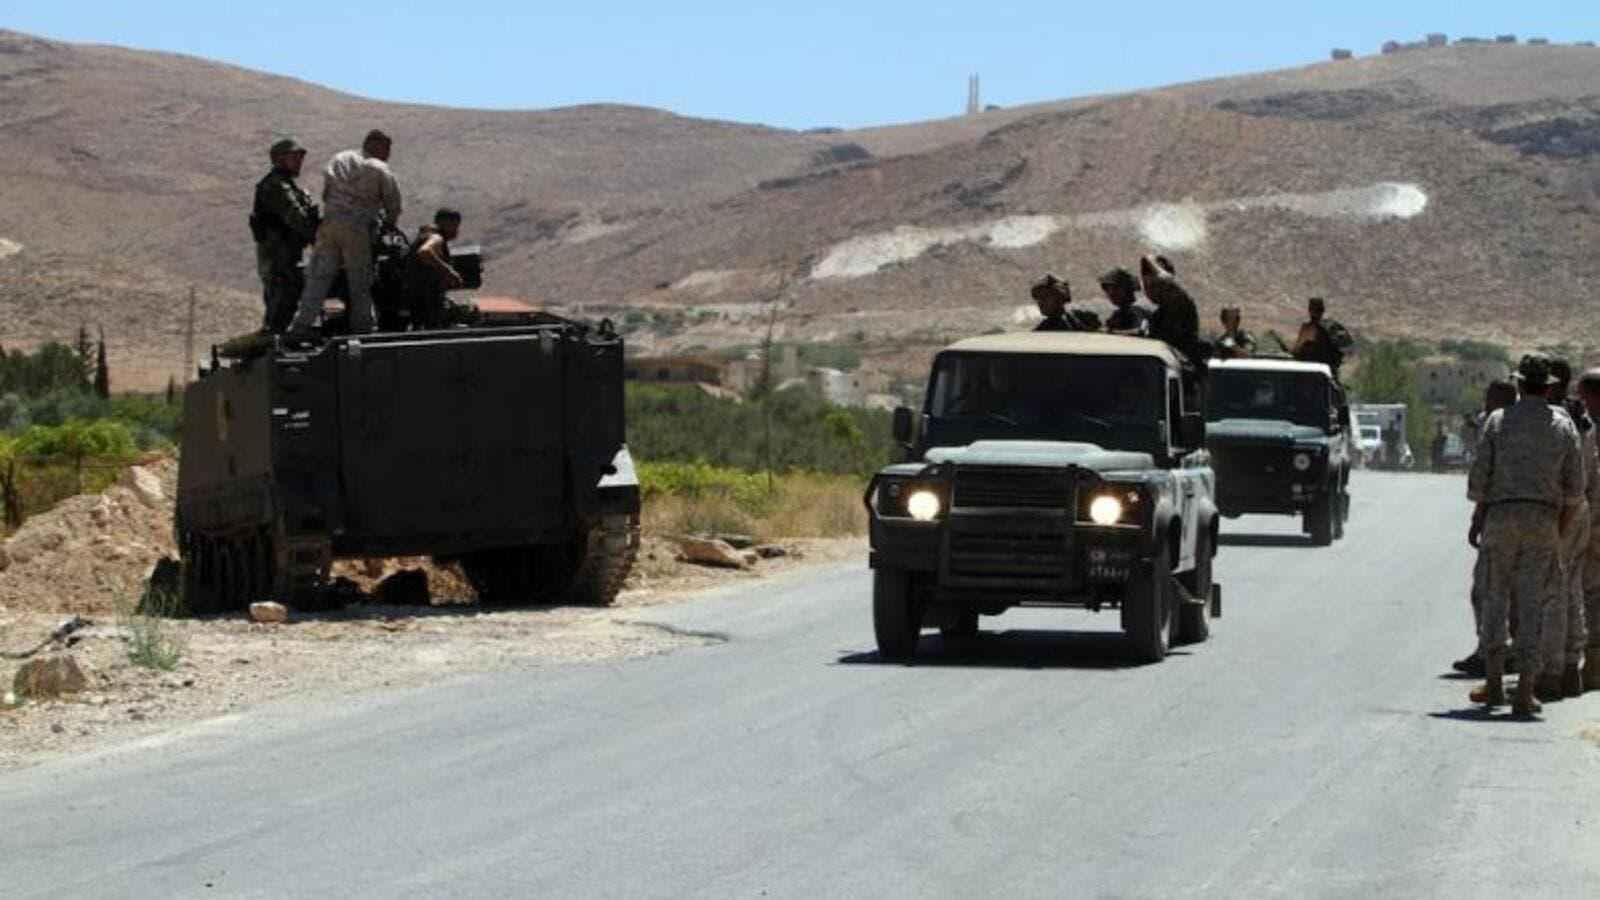 Lebanese troops frequently launch preemptive strikes against the militant groups to keep them at bay. (AFP/File)